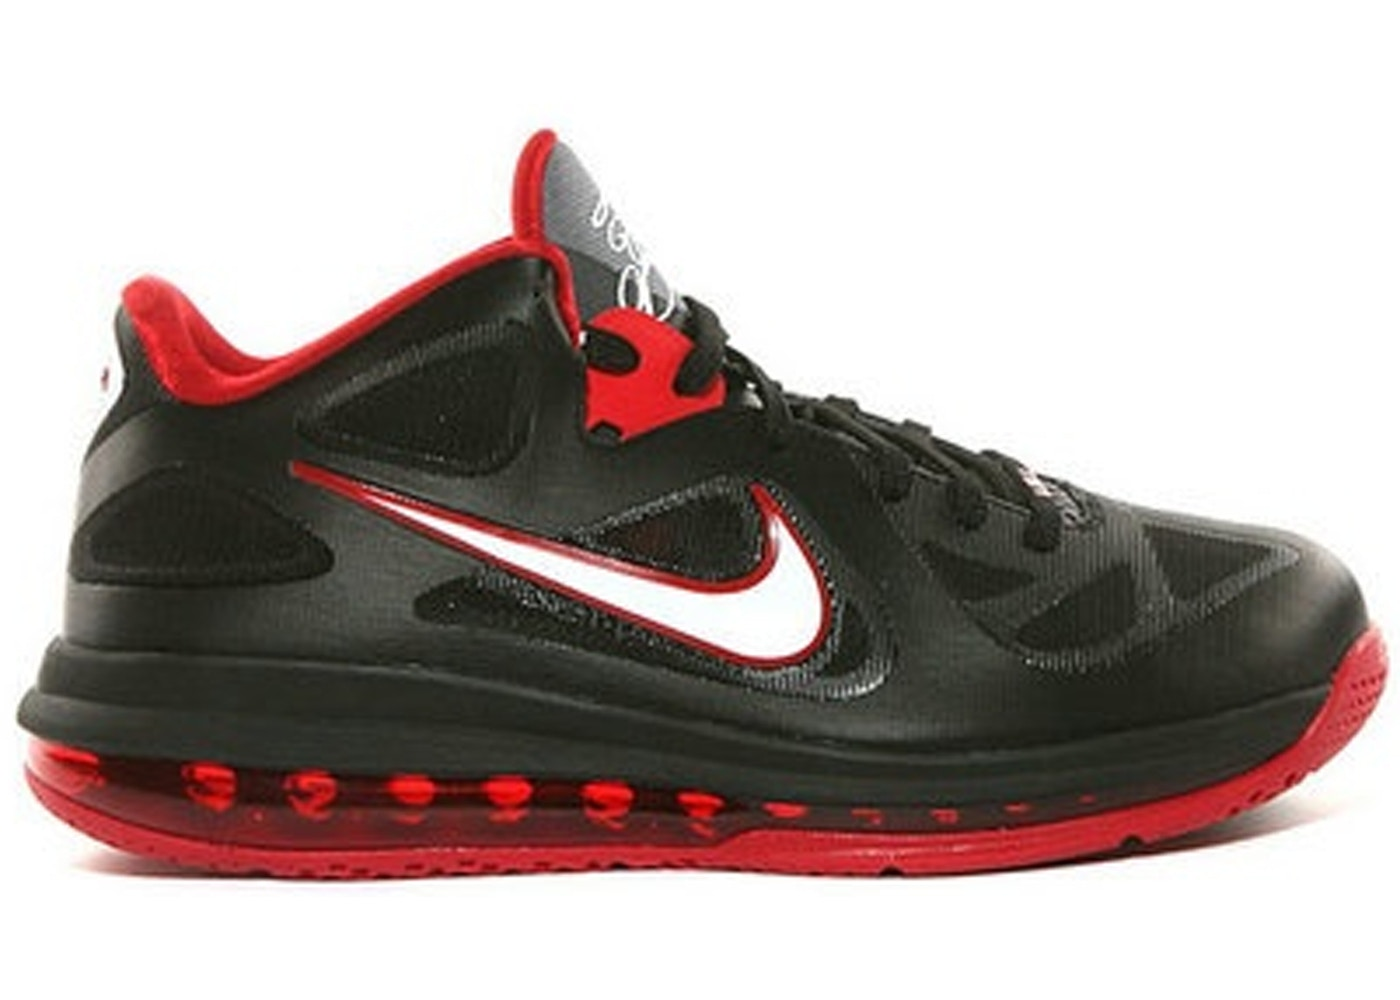 competitive price 095bc fffad Nike LeBron 9 Low Bred